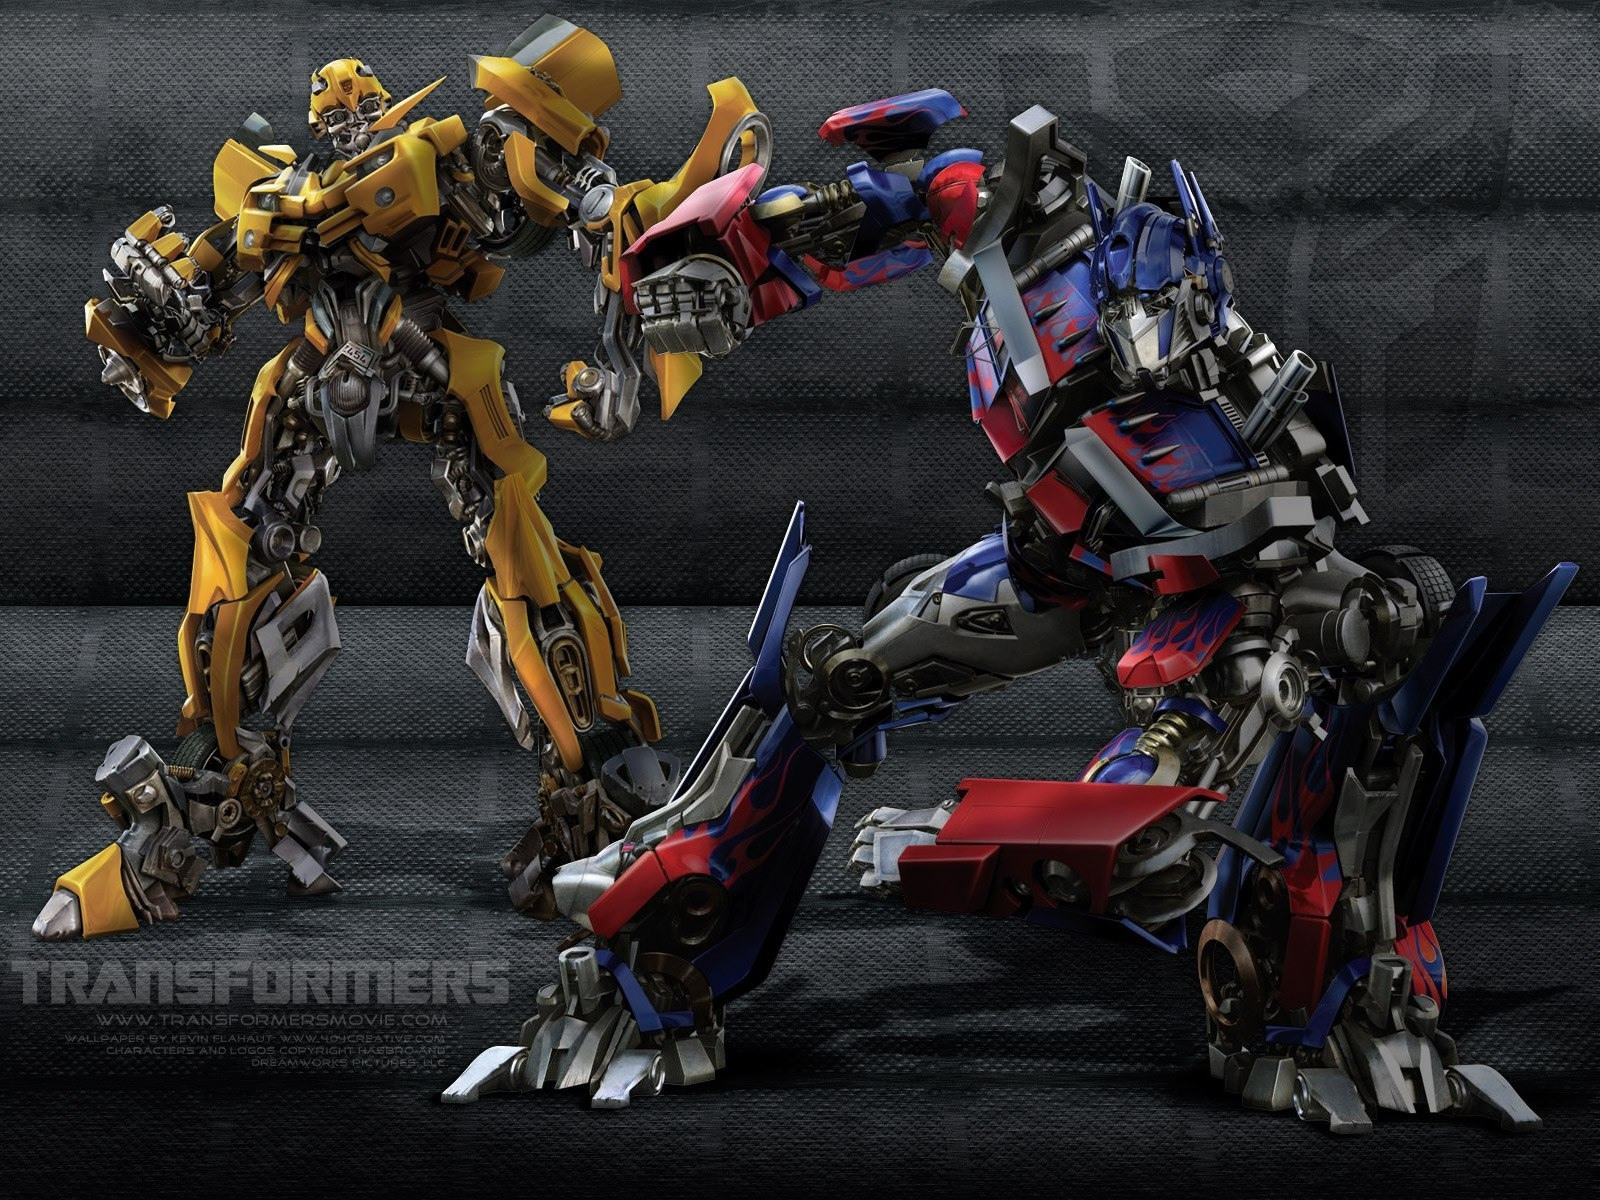 Imagenes De Transformers: Optimus Prime Wallpapers